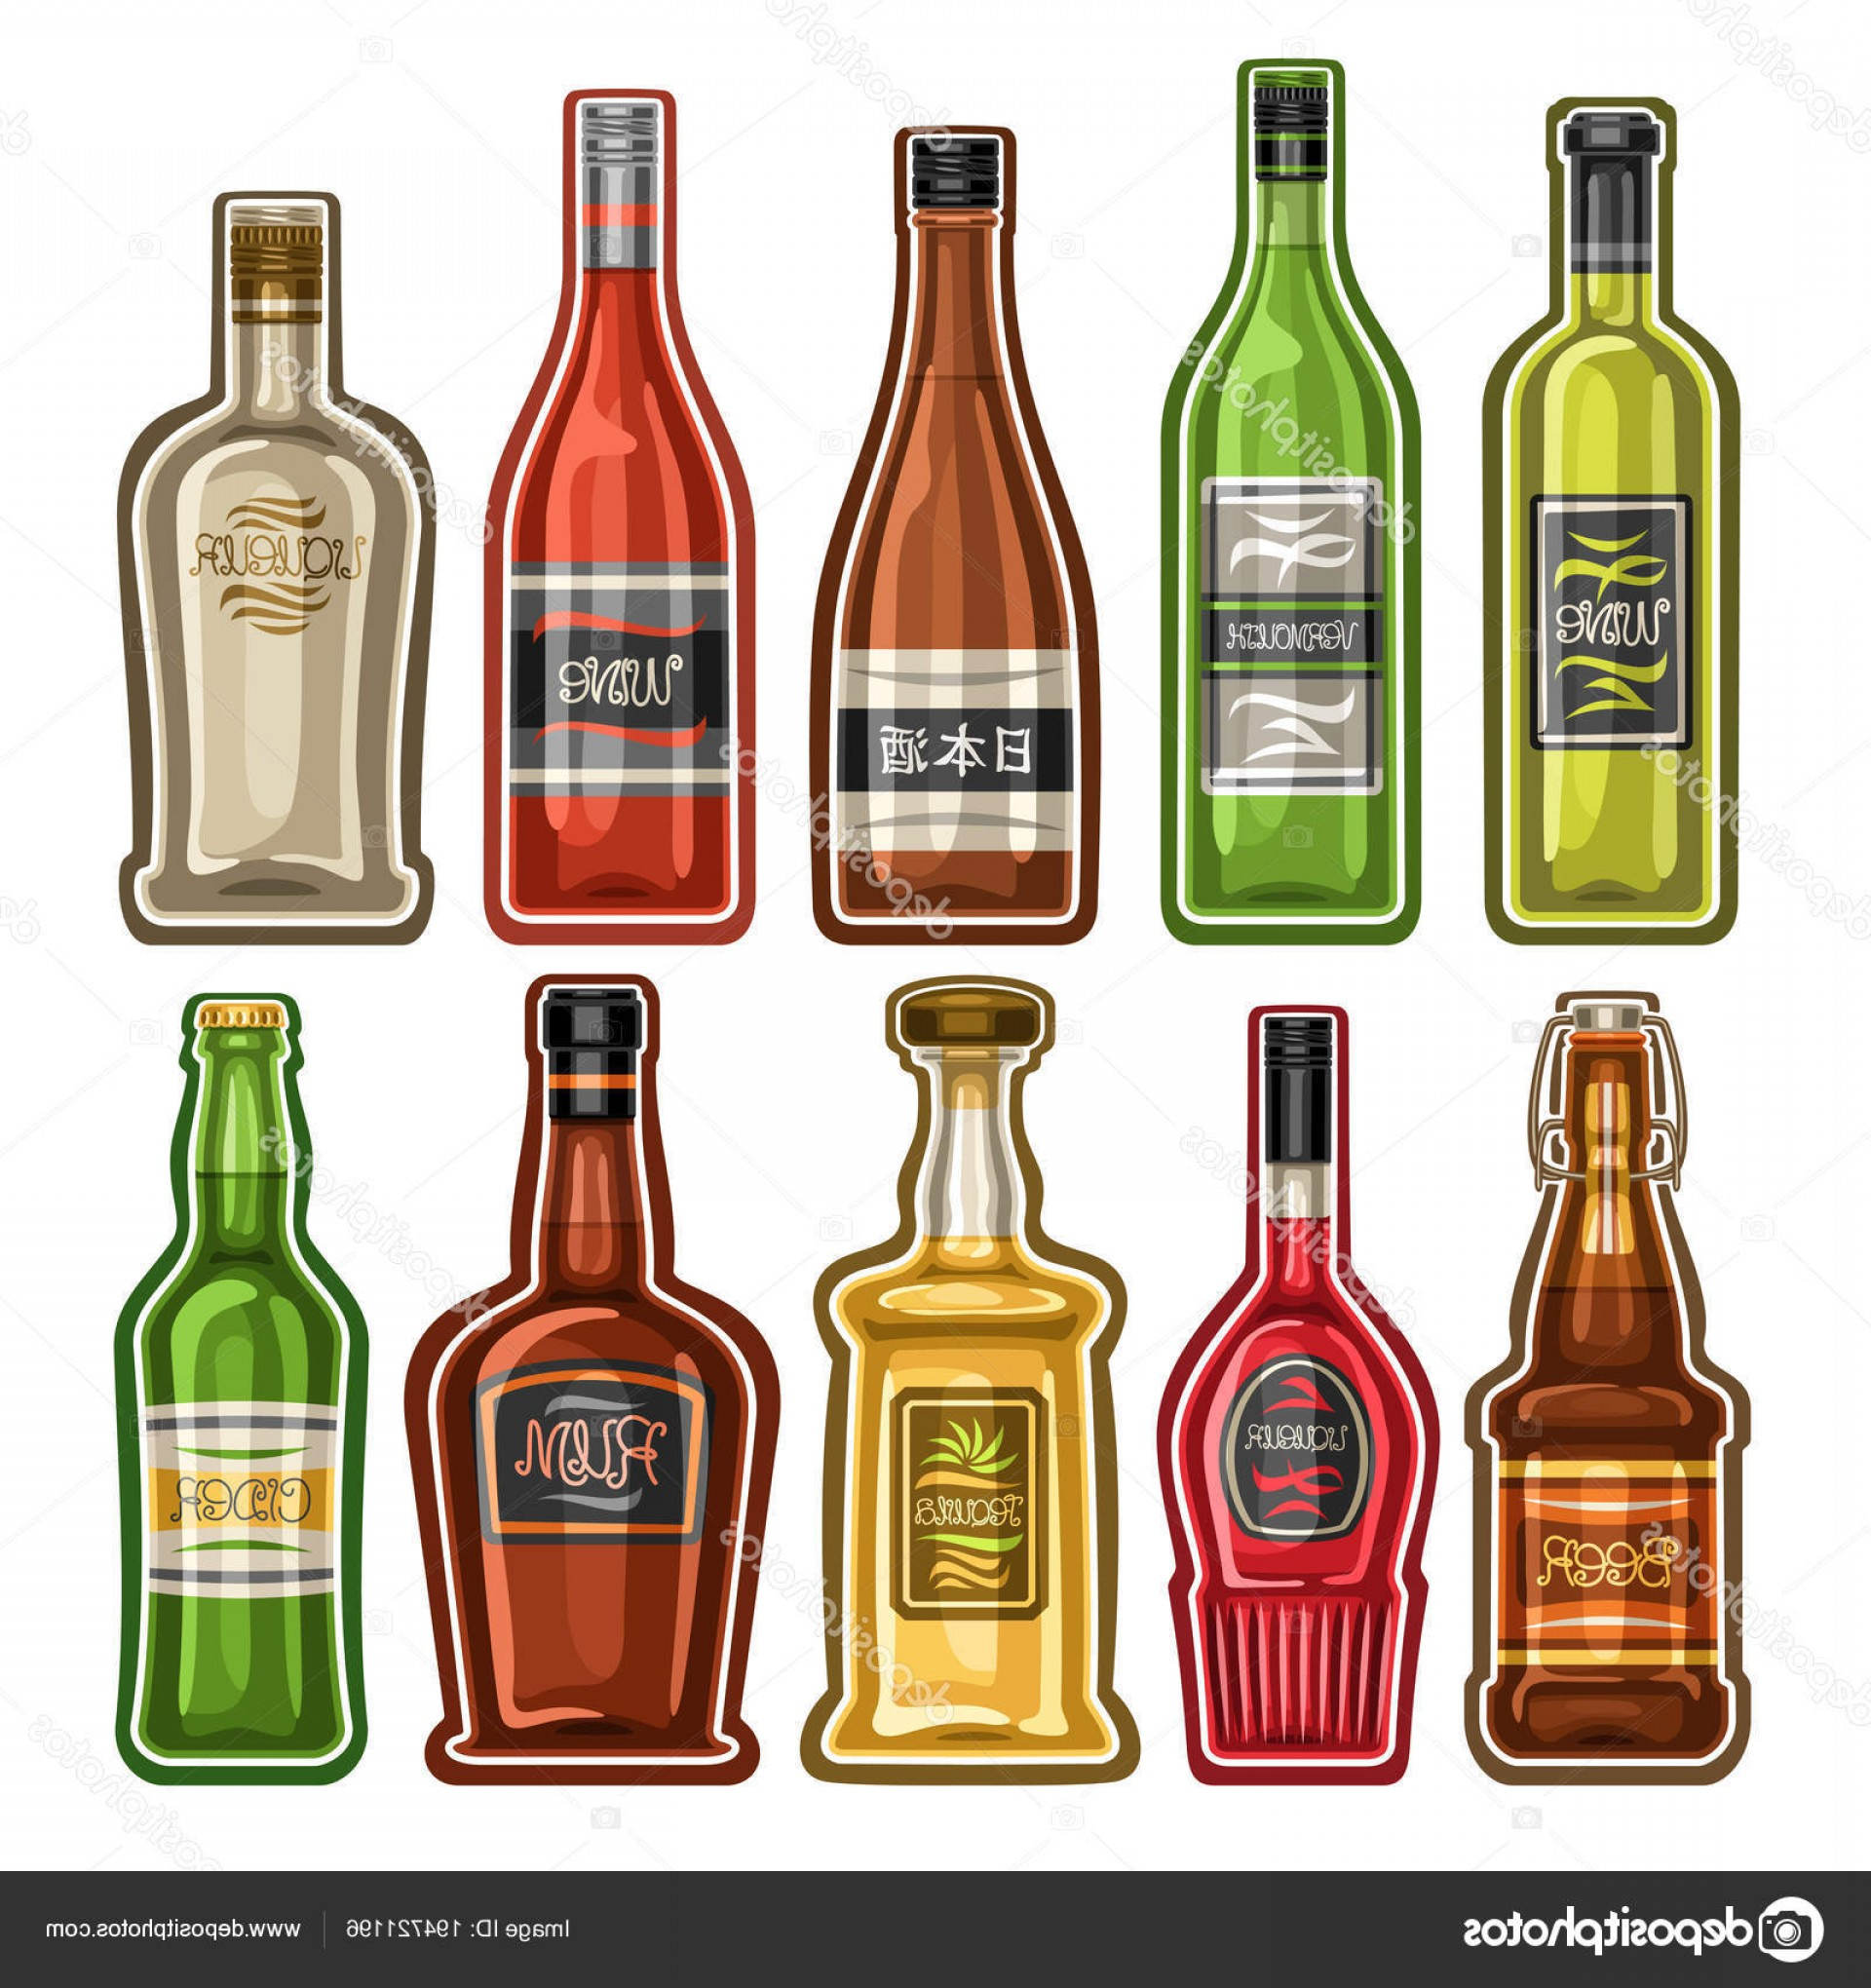 Booze Bottle Vector: Stock Illustration Vector Set Different Bottles Full